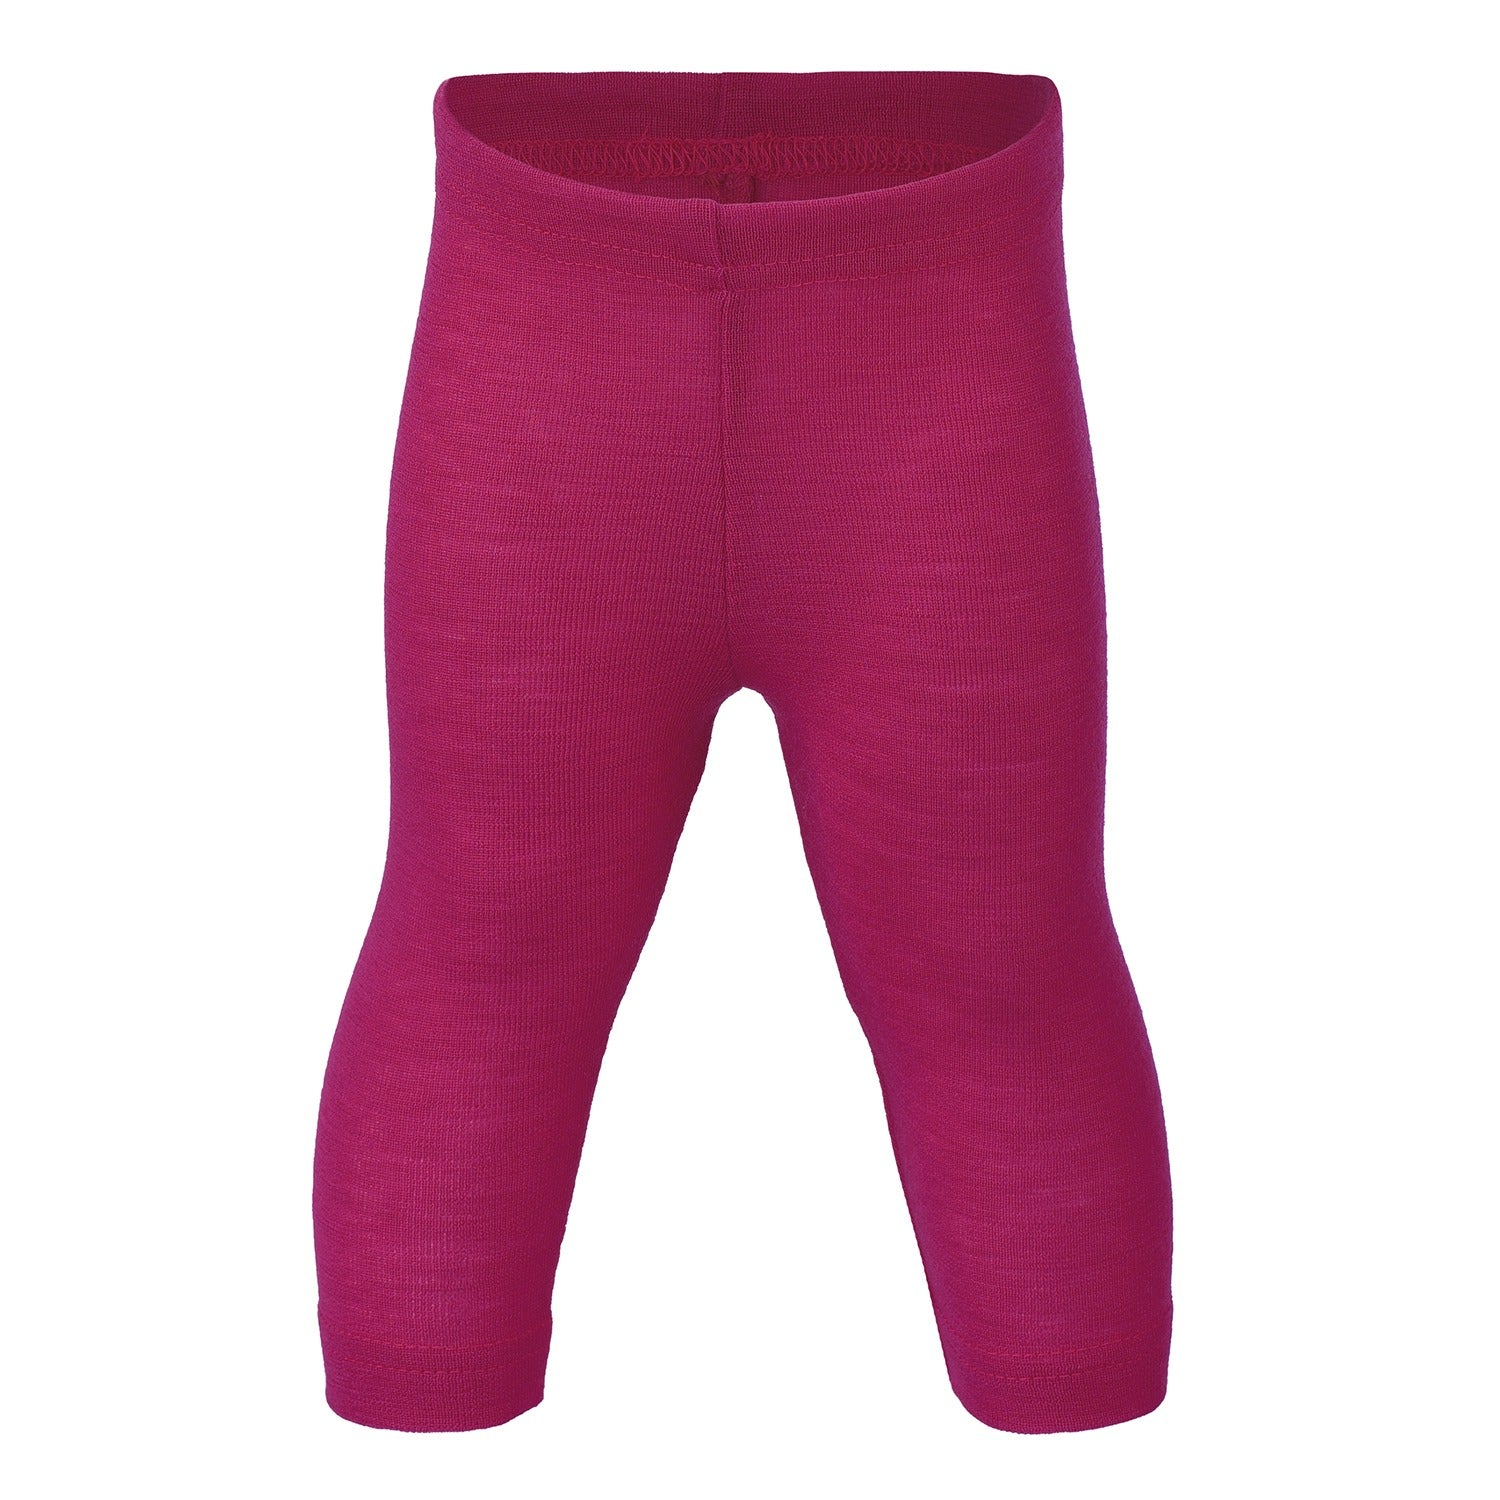 Image of   Engel bukser / leggings, uld/silke - Raspberry